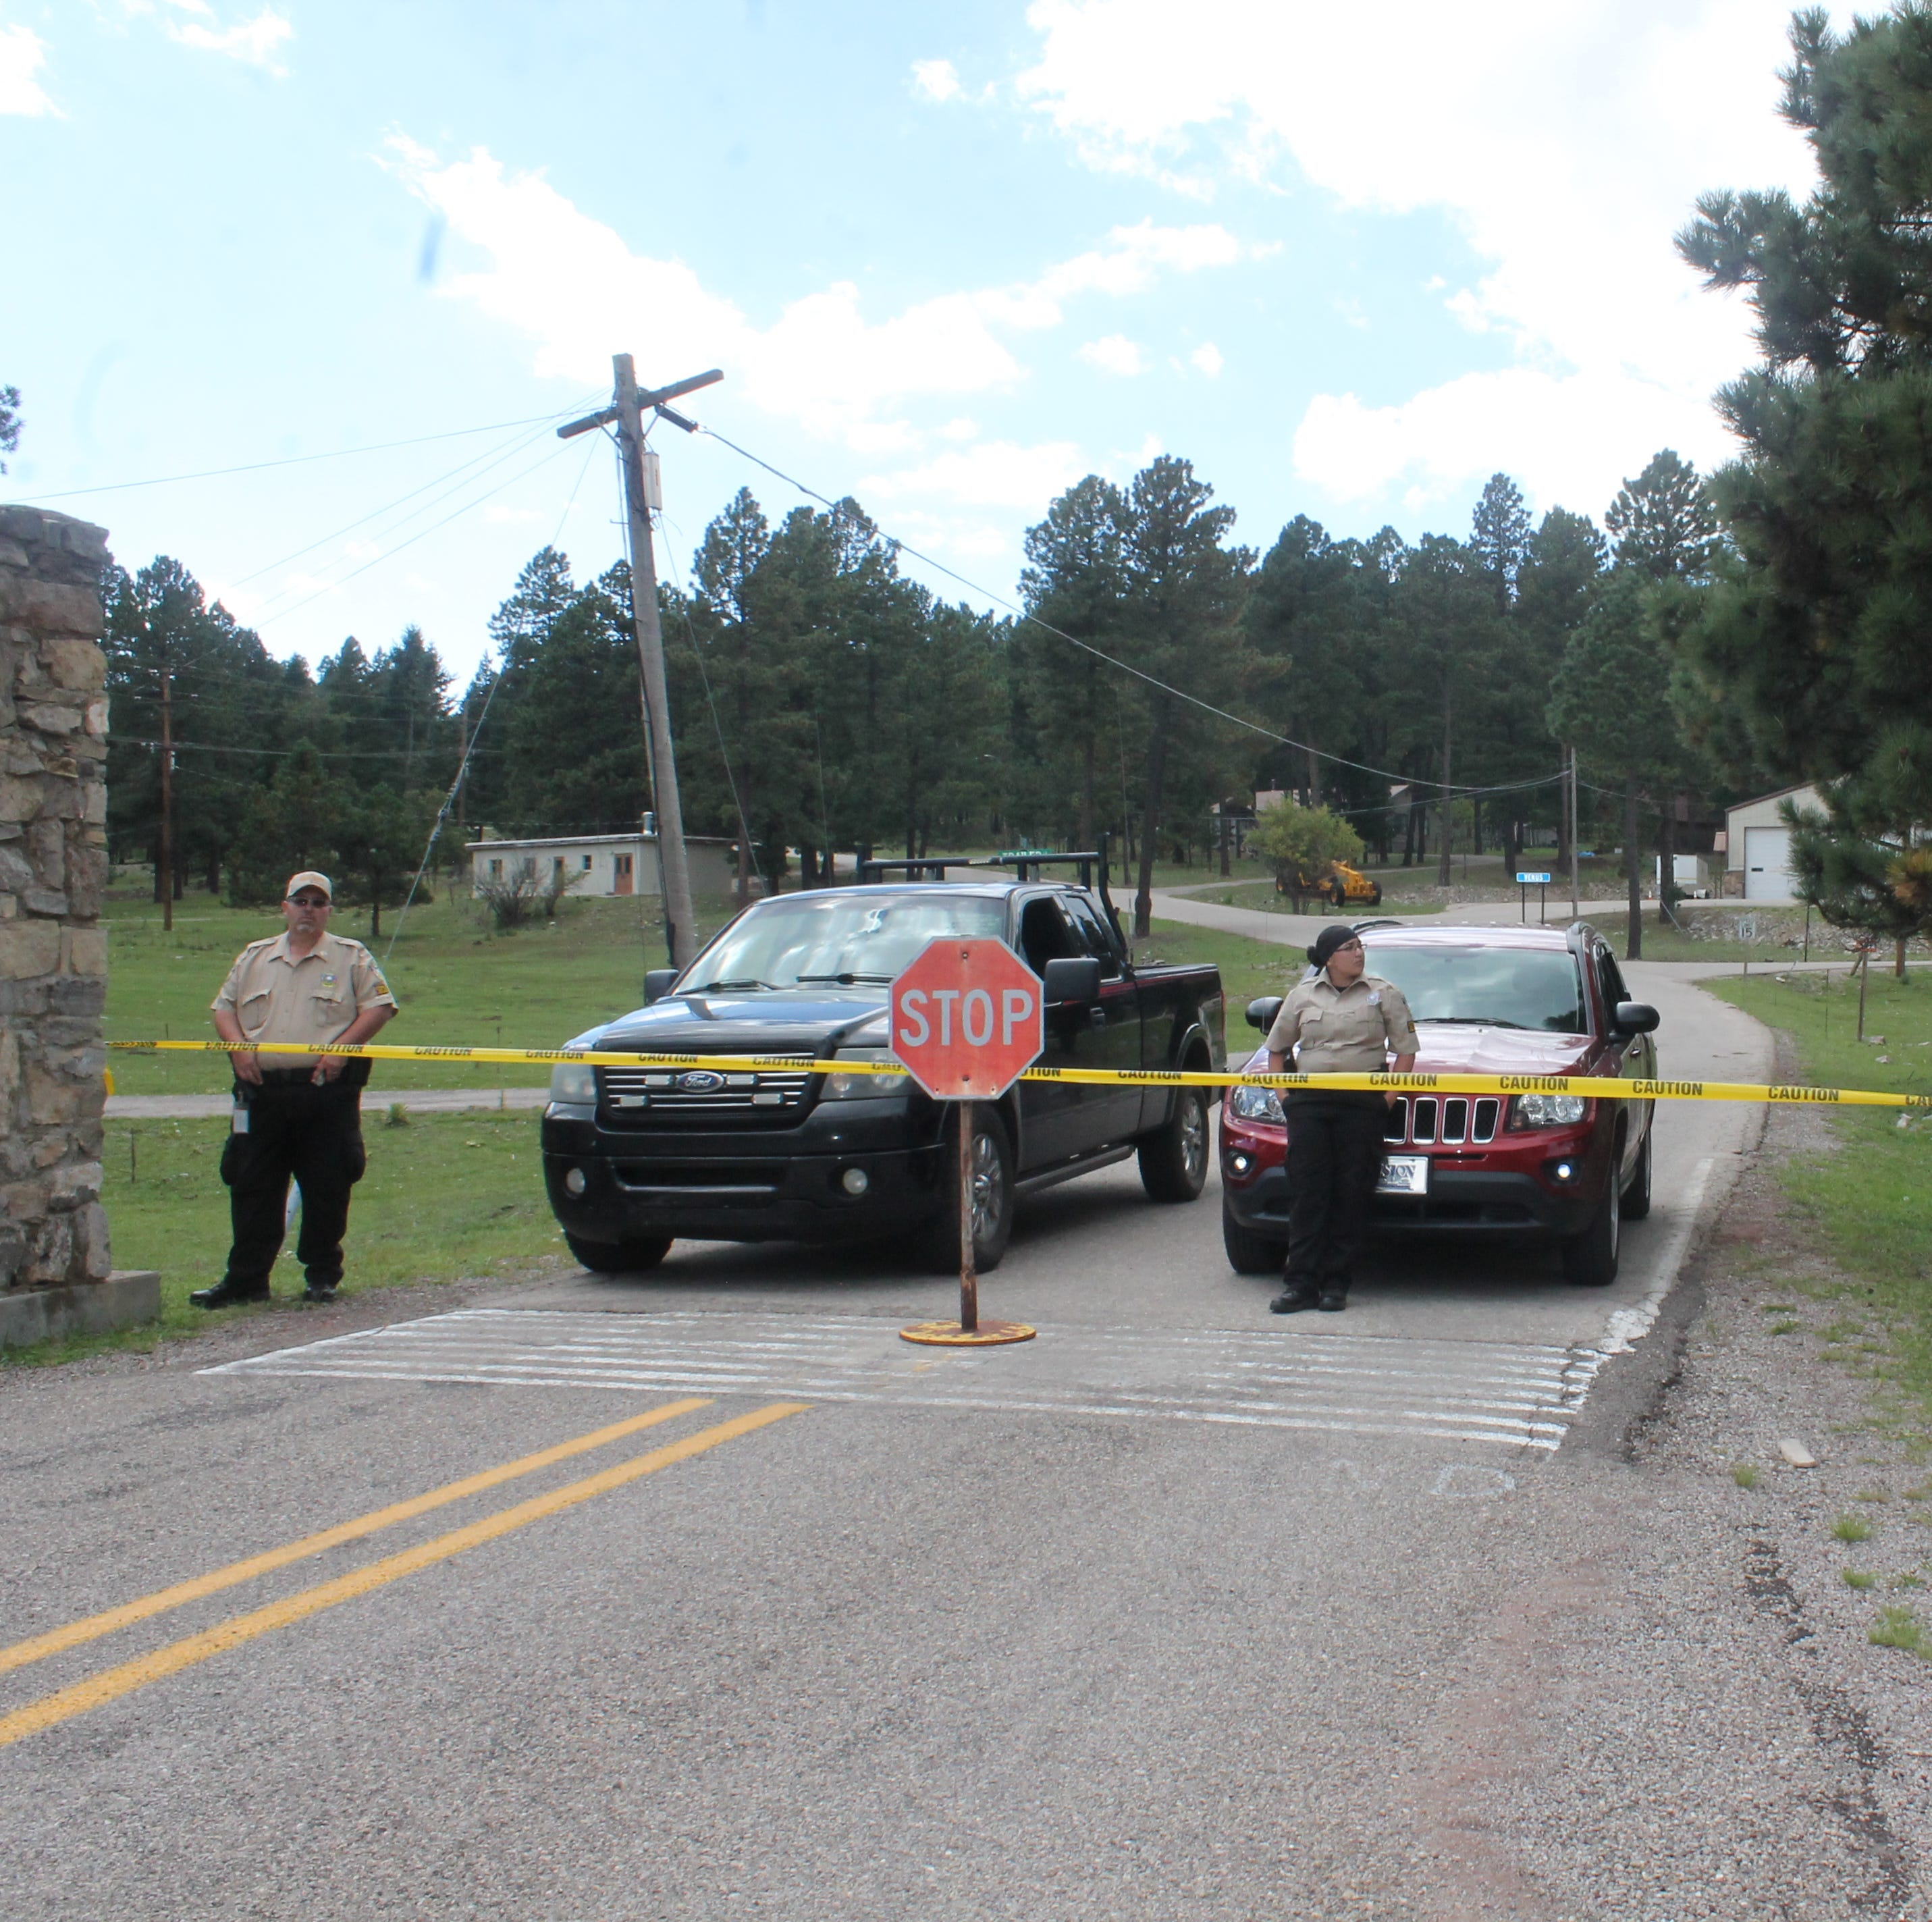 Sunspot Observatory to reopen Monday following security investigation